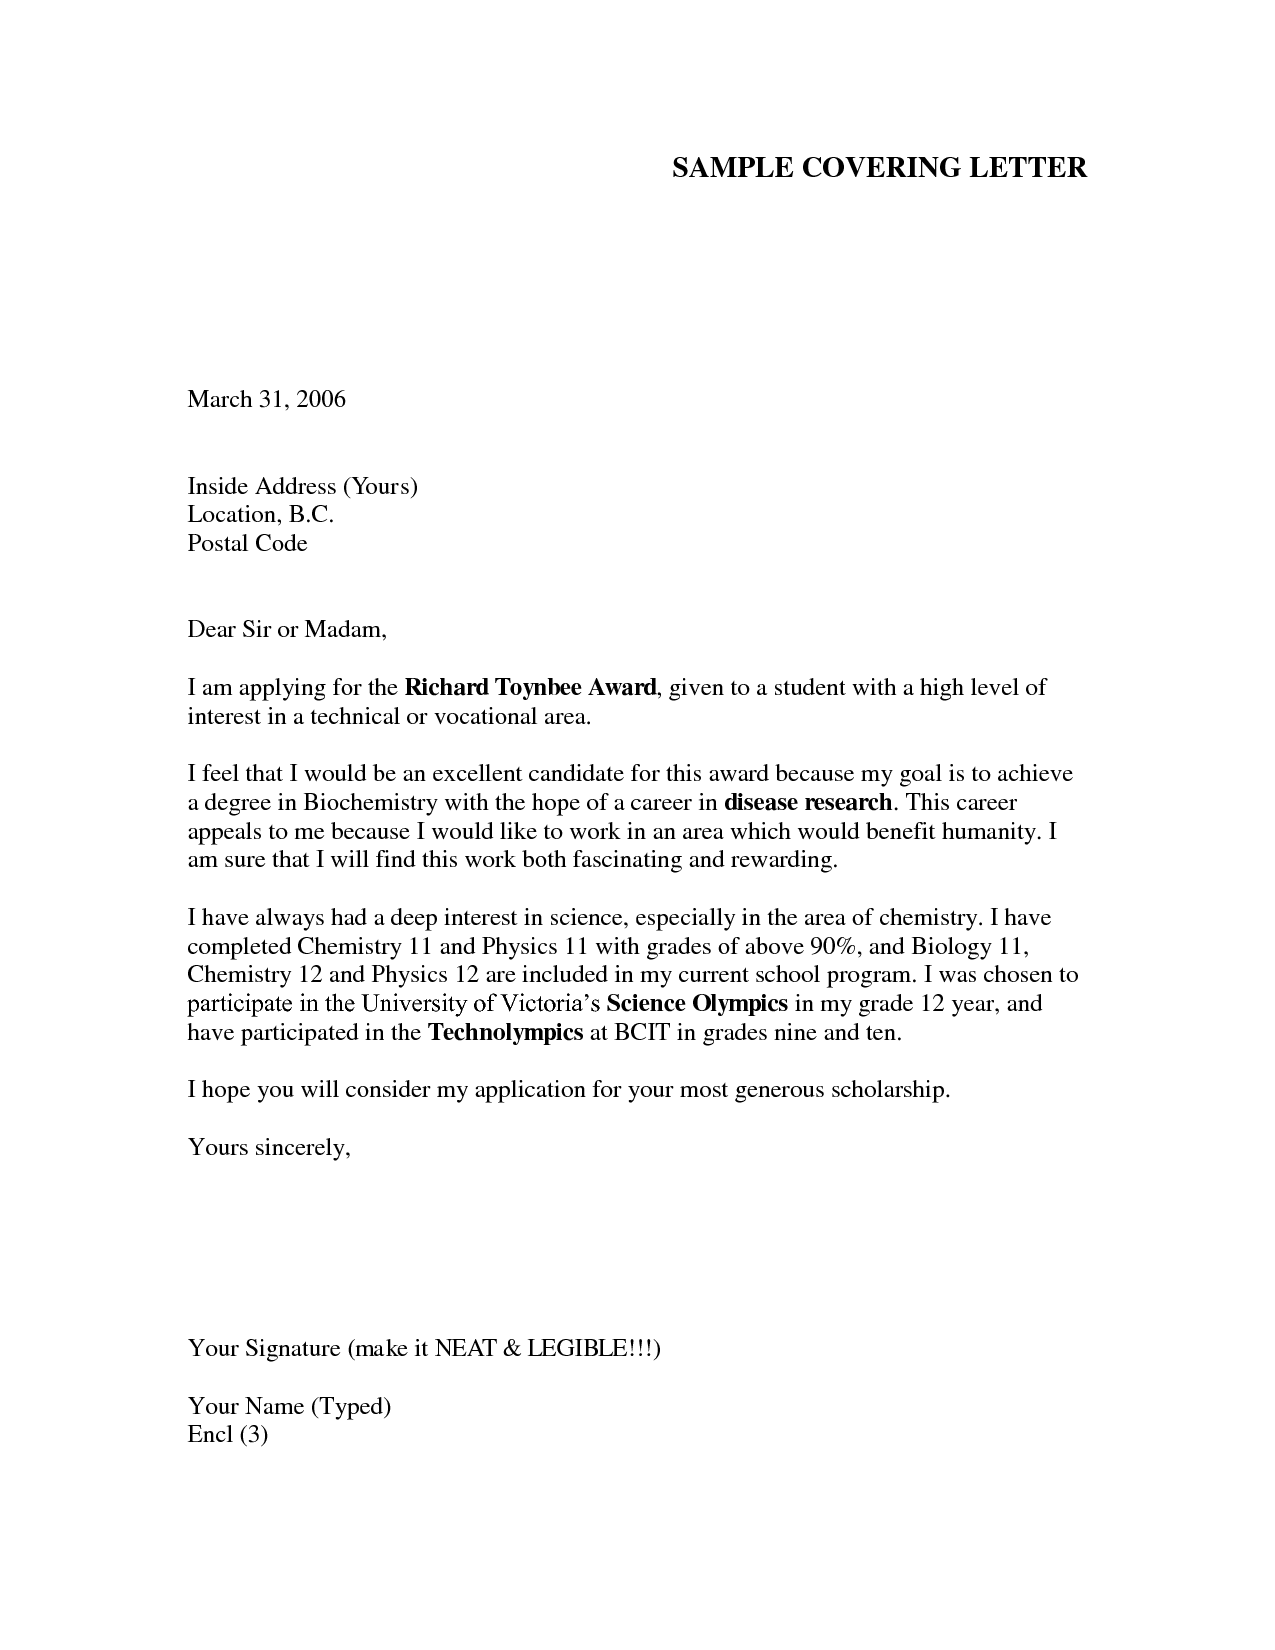 cover letter example for job application cover letter example for job application good cover letter